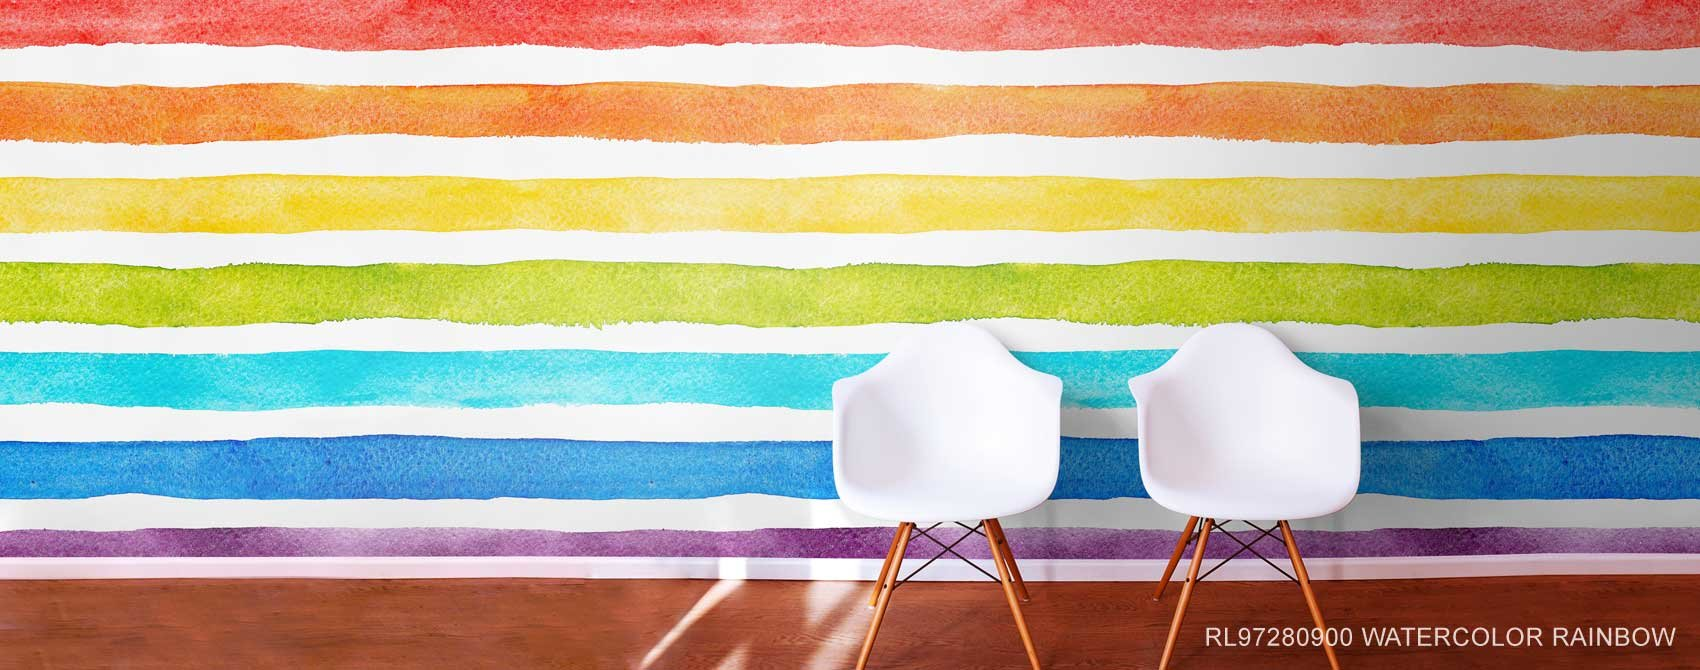 Watercolor Rainbow Wall Mural